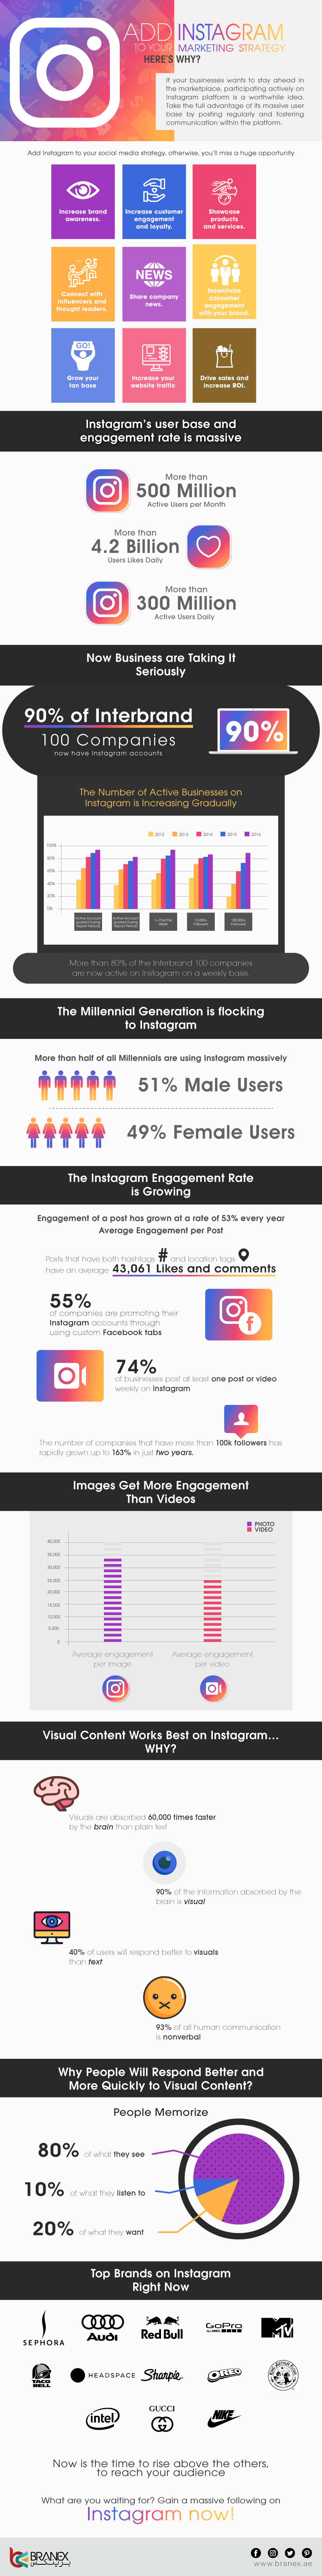 Add Instagram to Your Marketing Strategy, Here's Why? - Infographics